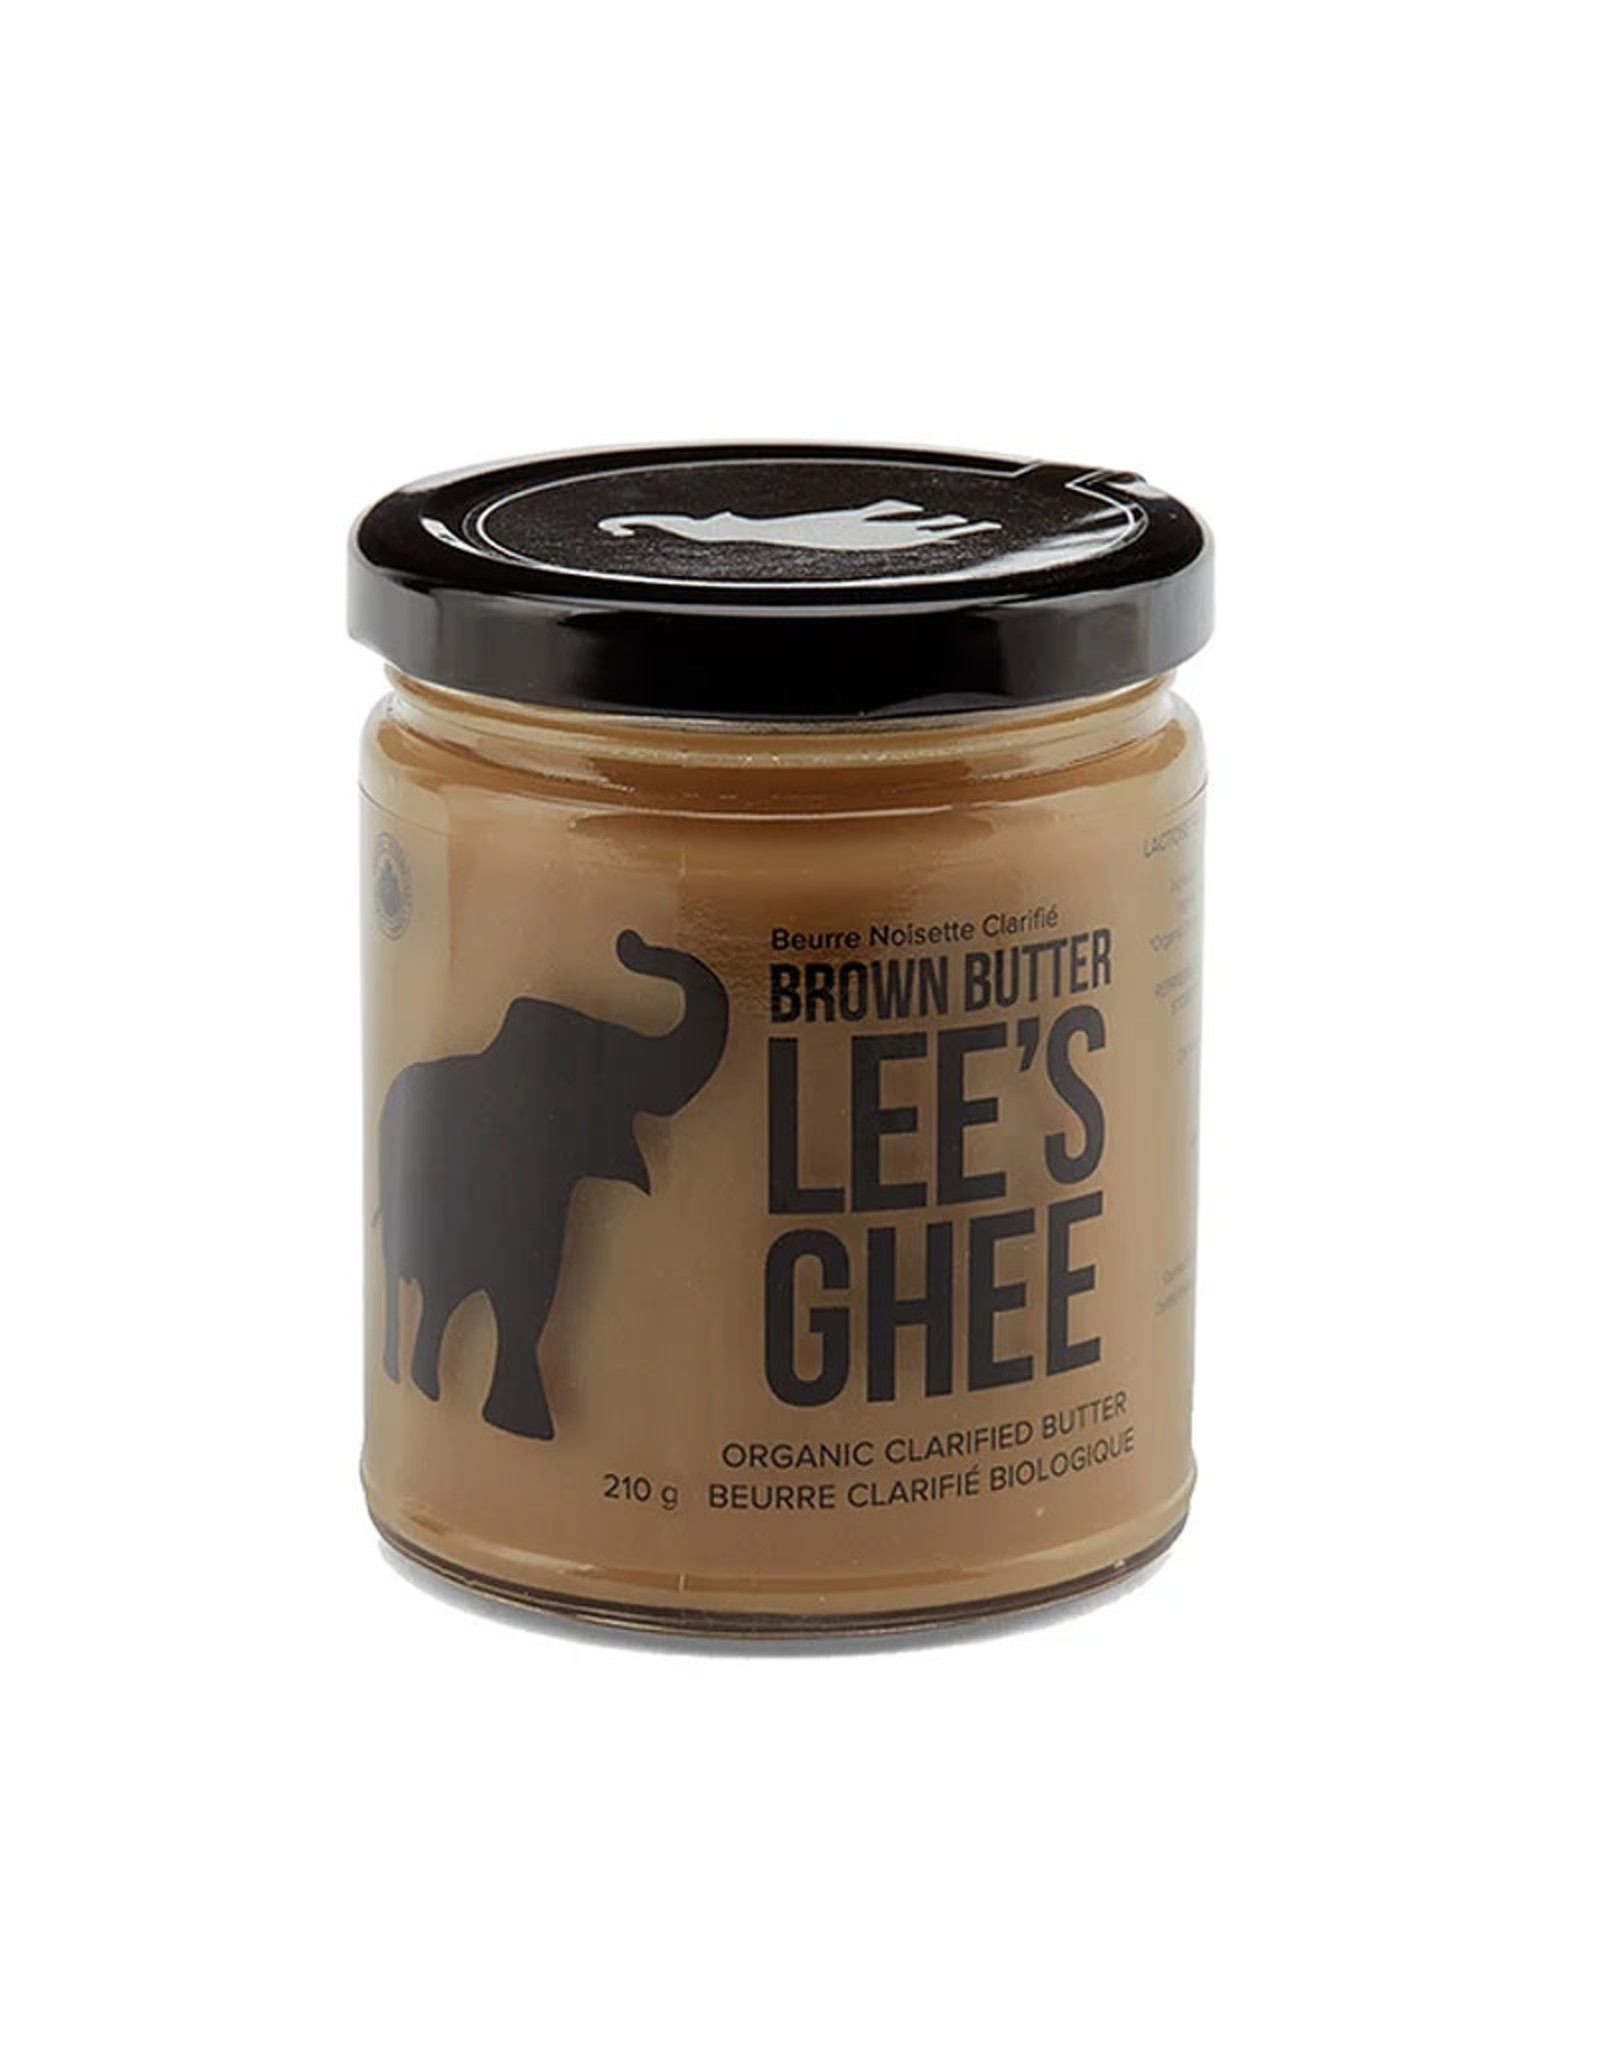 Lees Ghee Lees Ghee - Brown Butter (210g)